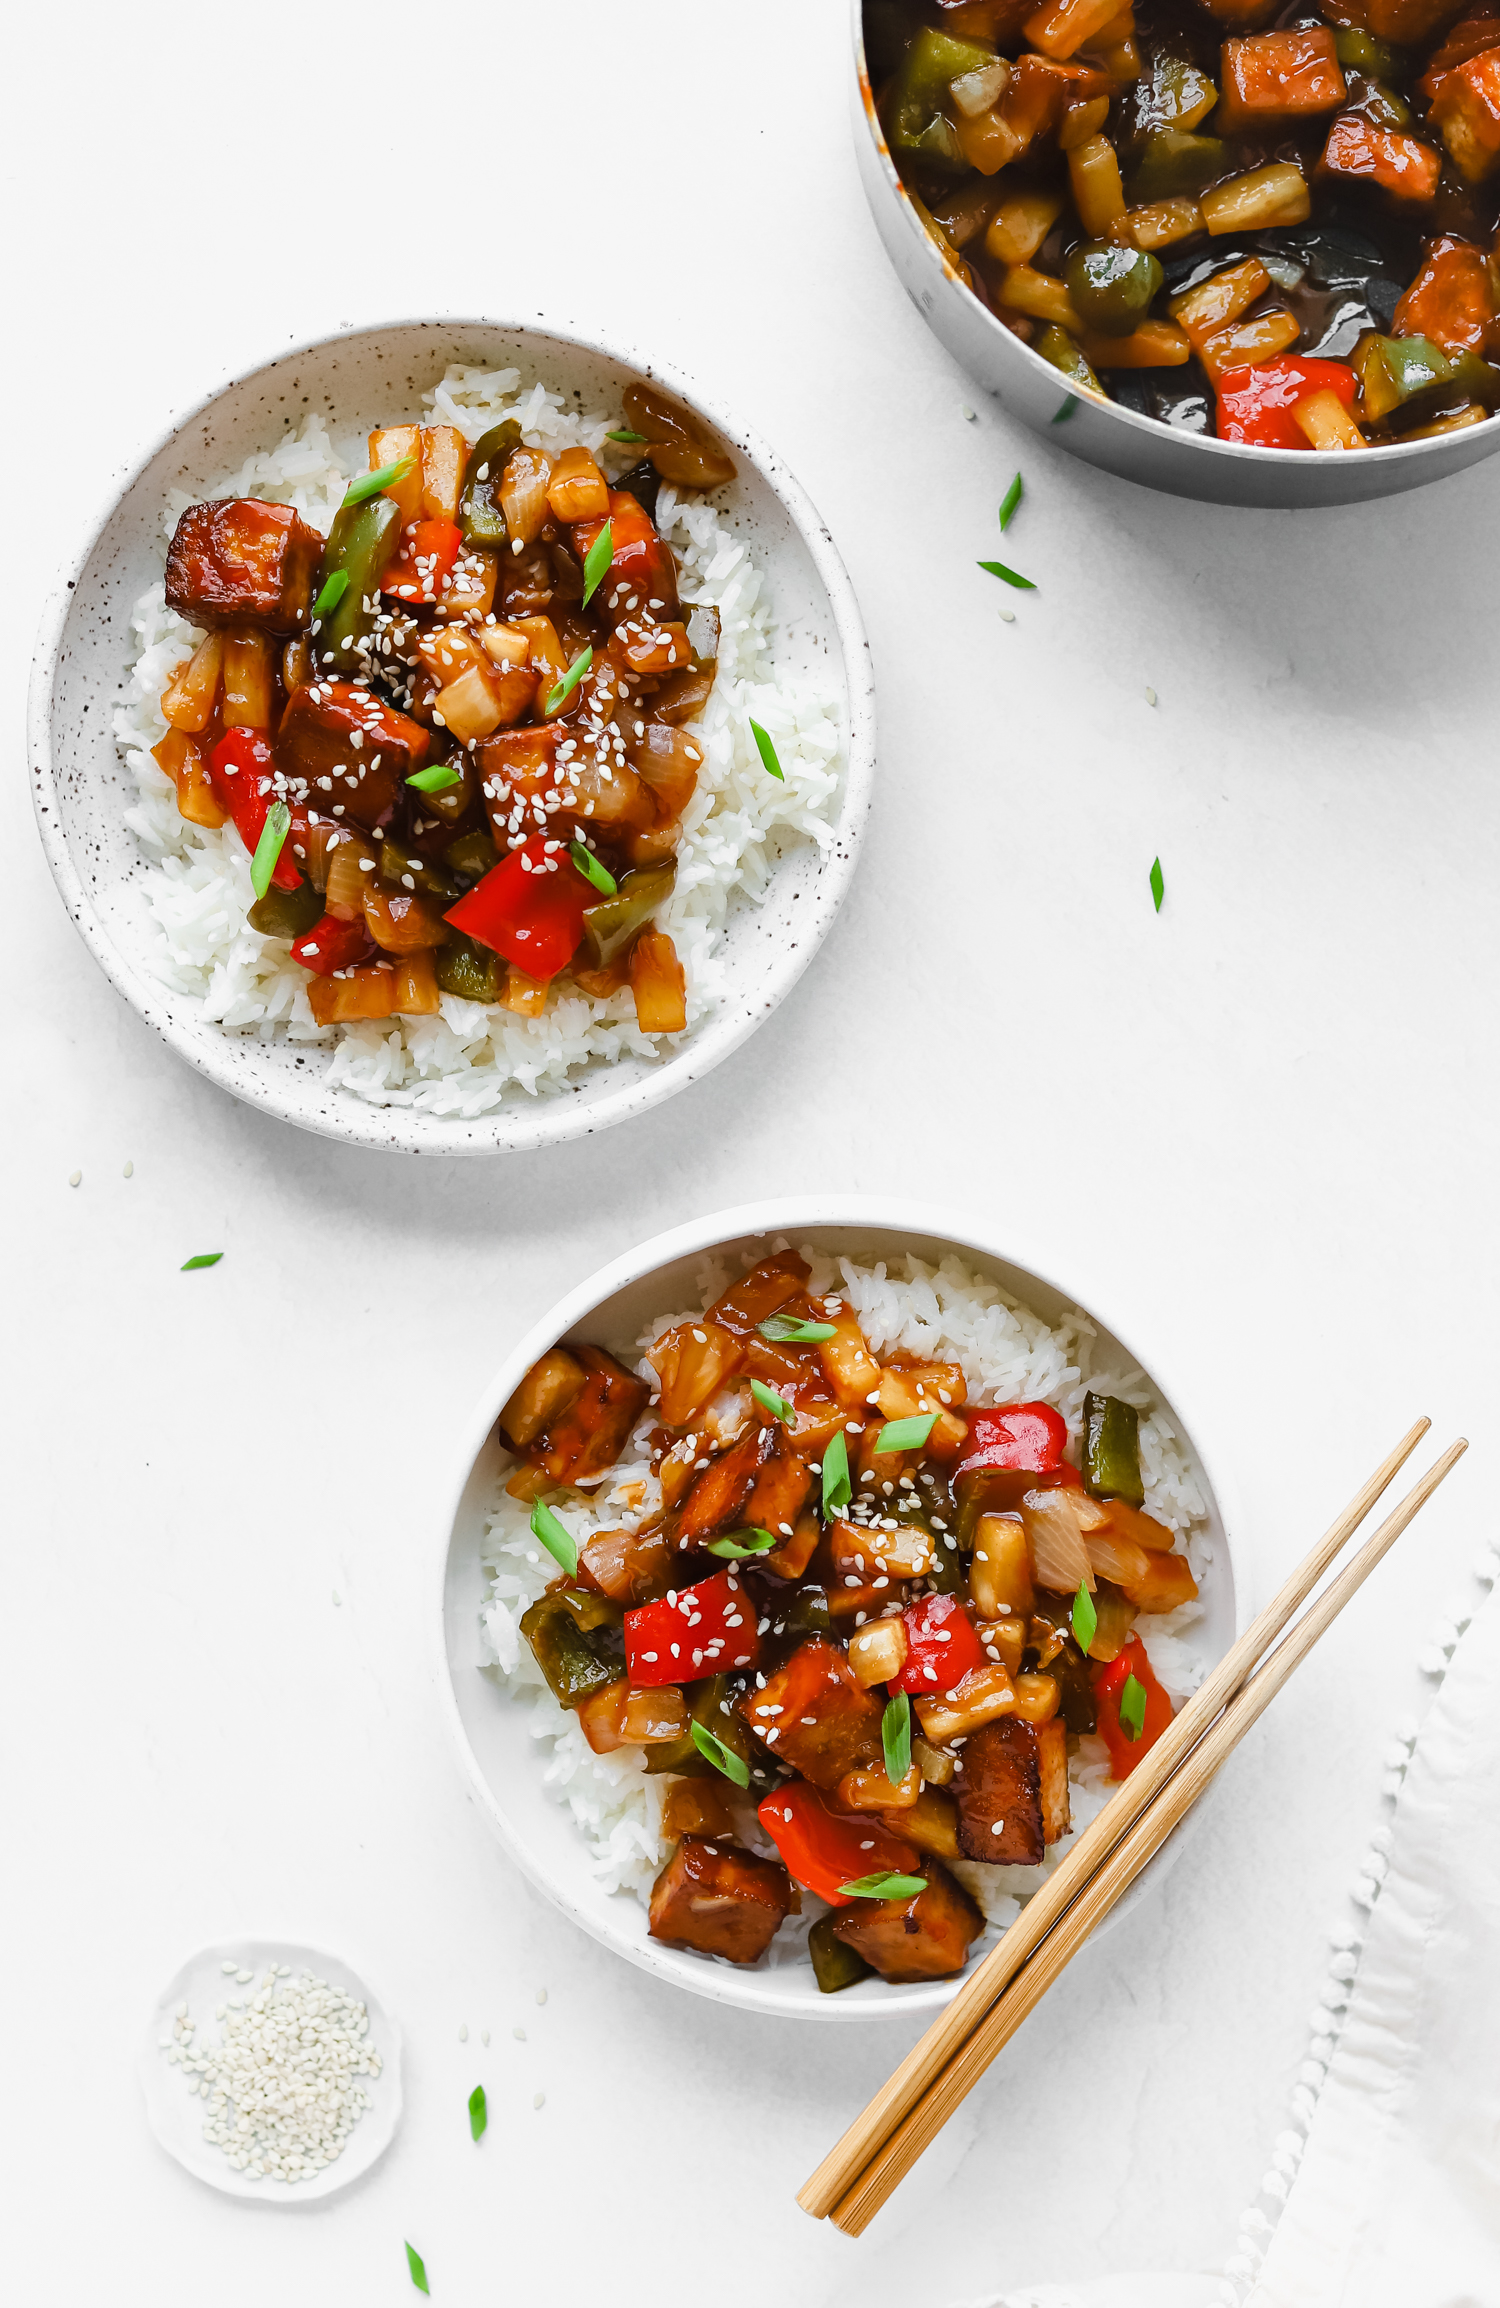 Two bowls of delicious baked tofu topped with green onions and white sesame seeds, smothered with homemade sweet and sour sauce.